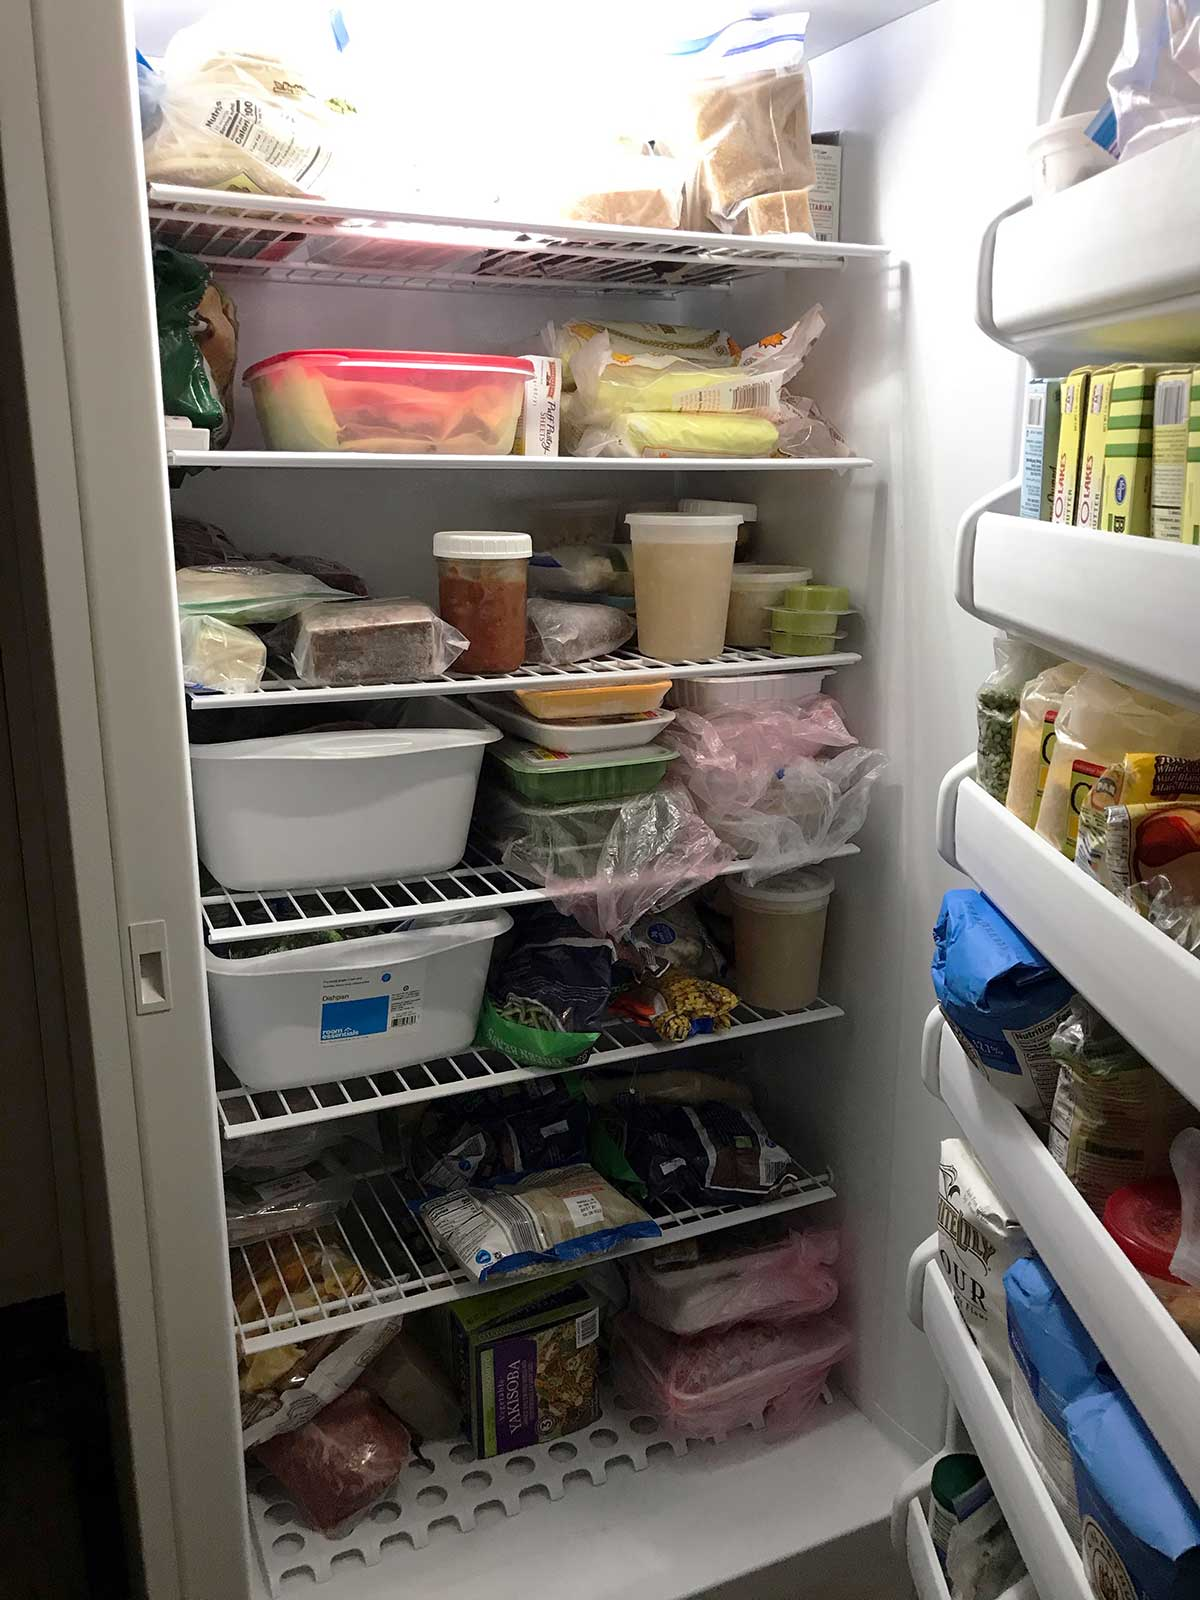 freezer with food on the shelves